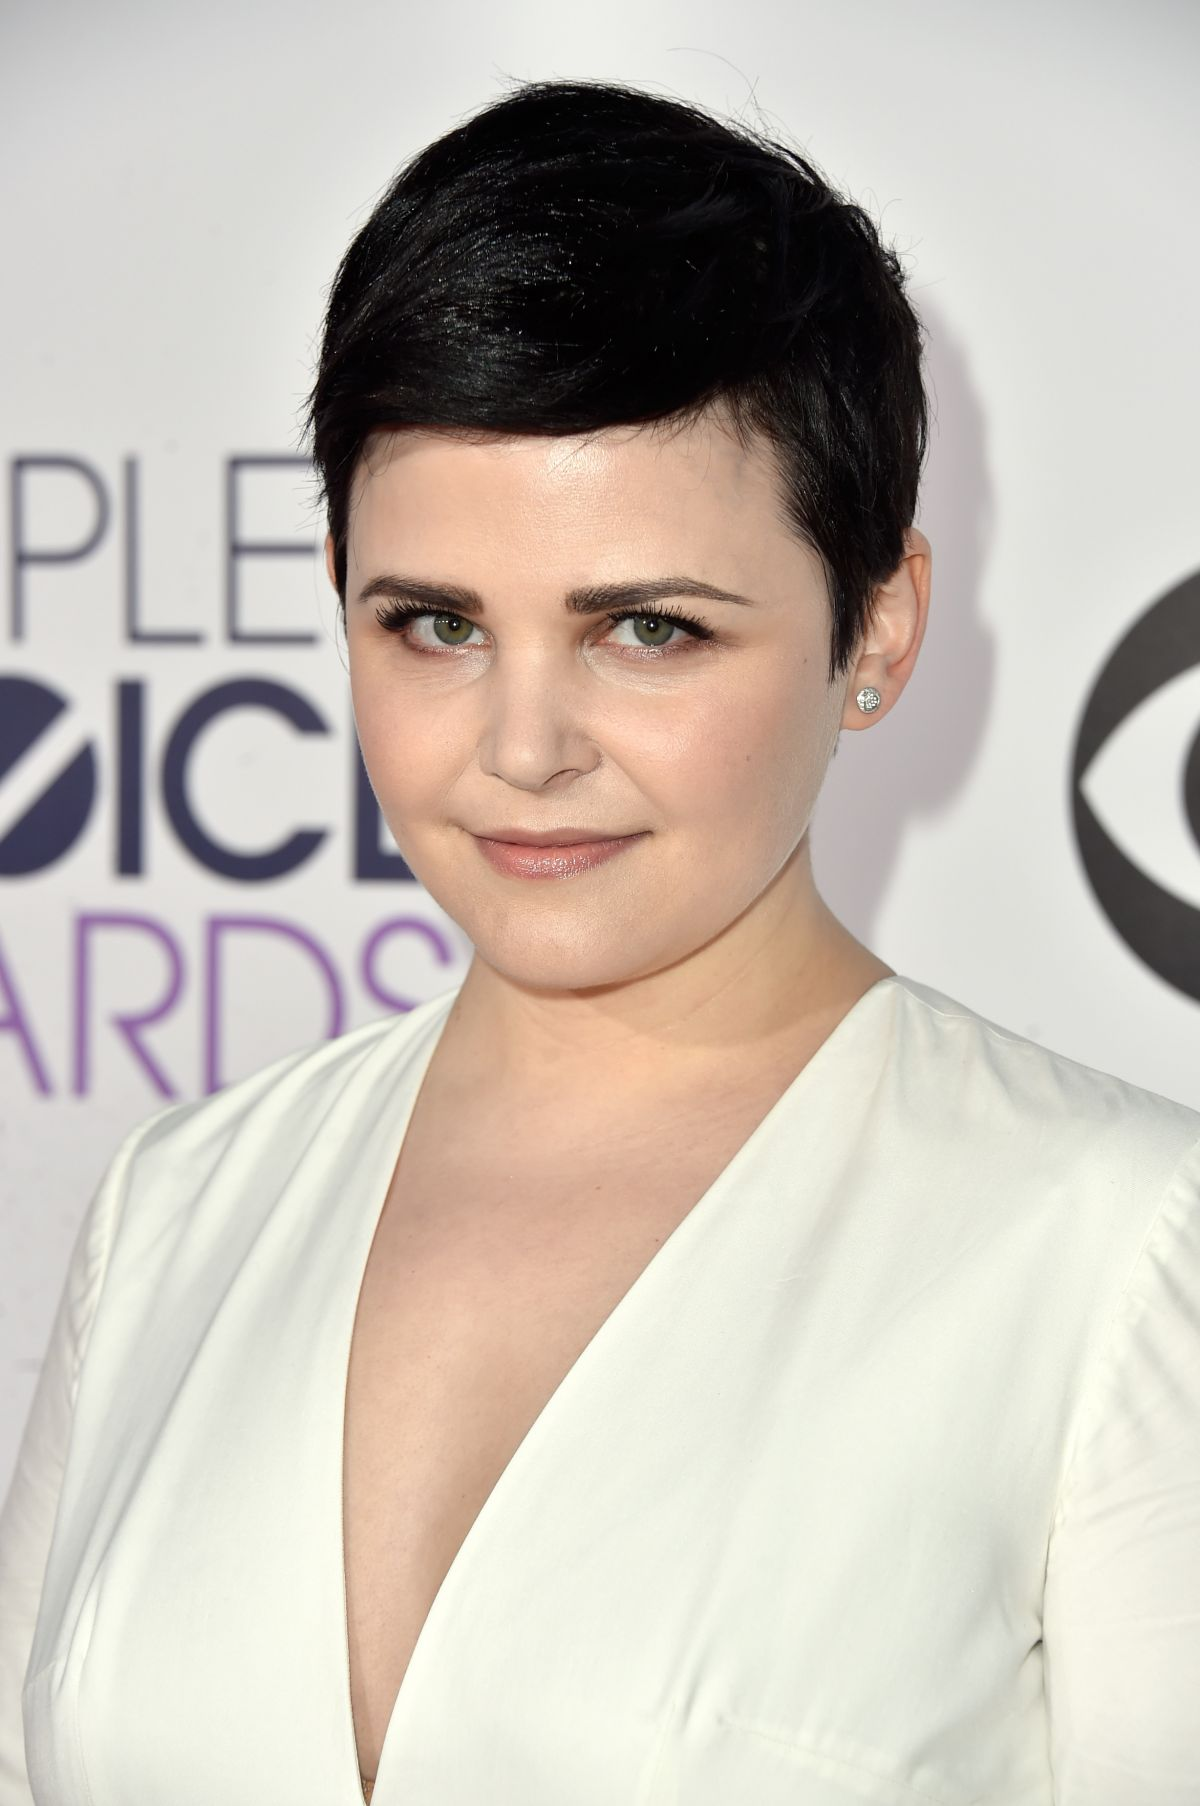 ginnifer goodwin 2017ginnifer goodwin and josh dallas, ginnifer goodwin 2017, ginnifer goodwin 2016, ginnifer goodwin vk, ginnifer goodwin tumblr, ginnifer goodwin and josh dallas wedding, ginnifer goodwin site, ginnifer goodwin gif, ginnifer goodwin кинопоиск, ginnifer goodwin mona lisa smile, ginnifer goodwin 2014, ginnifer goodwin and jason bateman, ginnifer goodwin twitter, ginnifer goodwin natal chart, ginnifer goodwin википедия, ginnifer goodwin dance, ginnifer goodwin husband, ginnifer goodwin quotes, ginnifer goodwin kennedy, ginnifer goodwin 2010